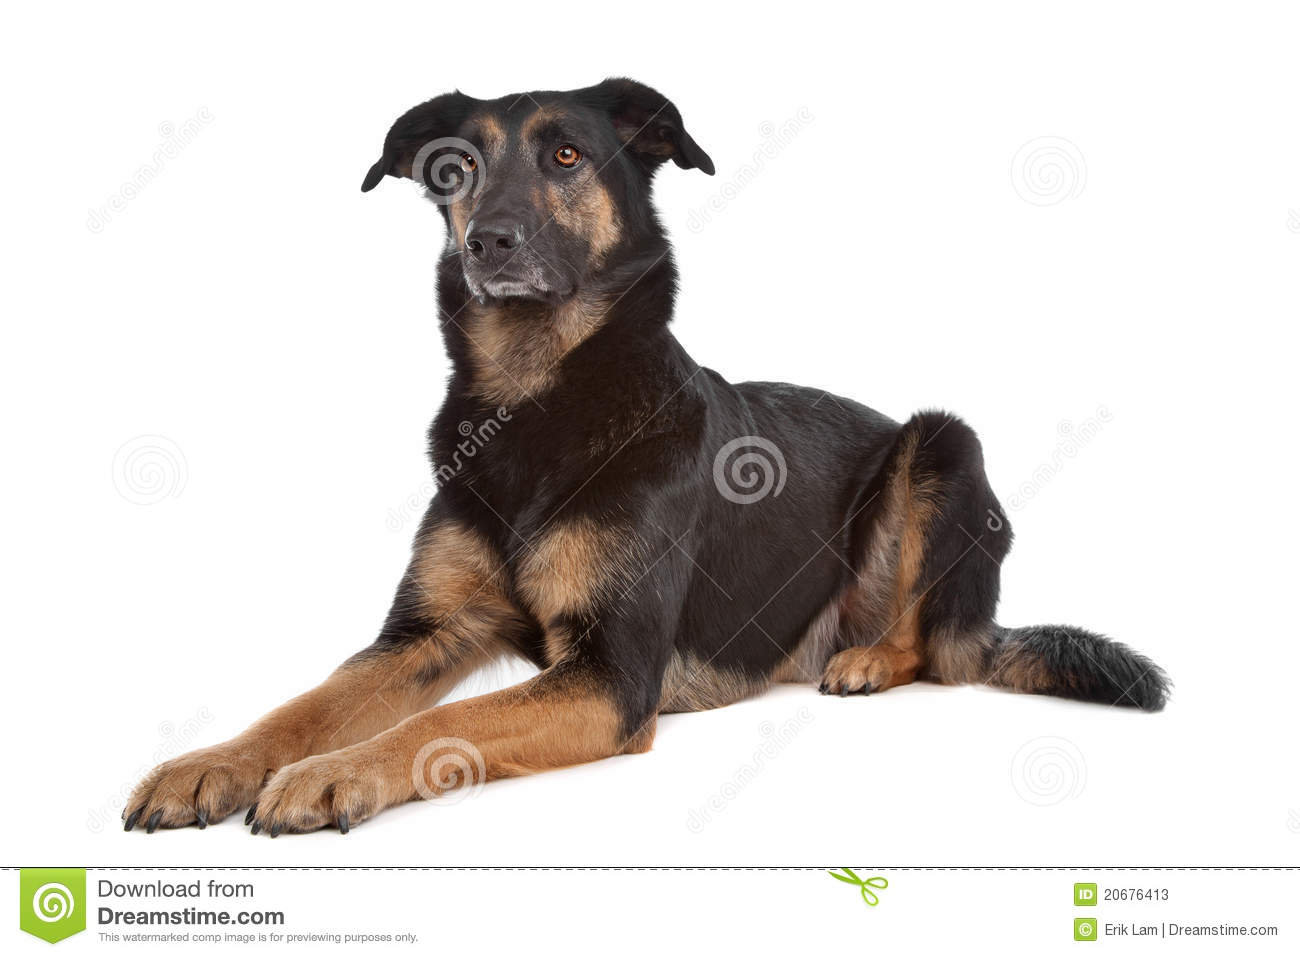 Mixed breed shepherd dog in front of a white background.